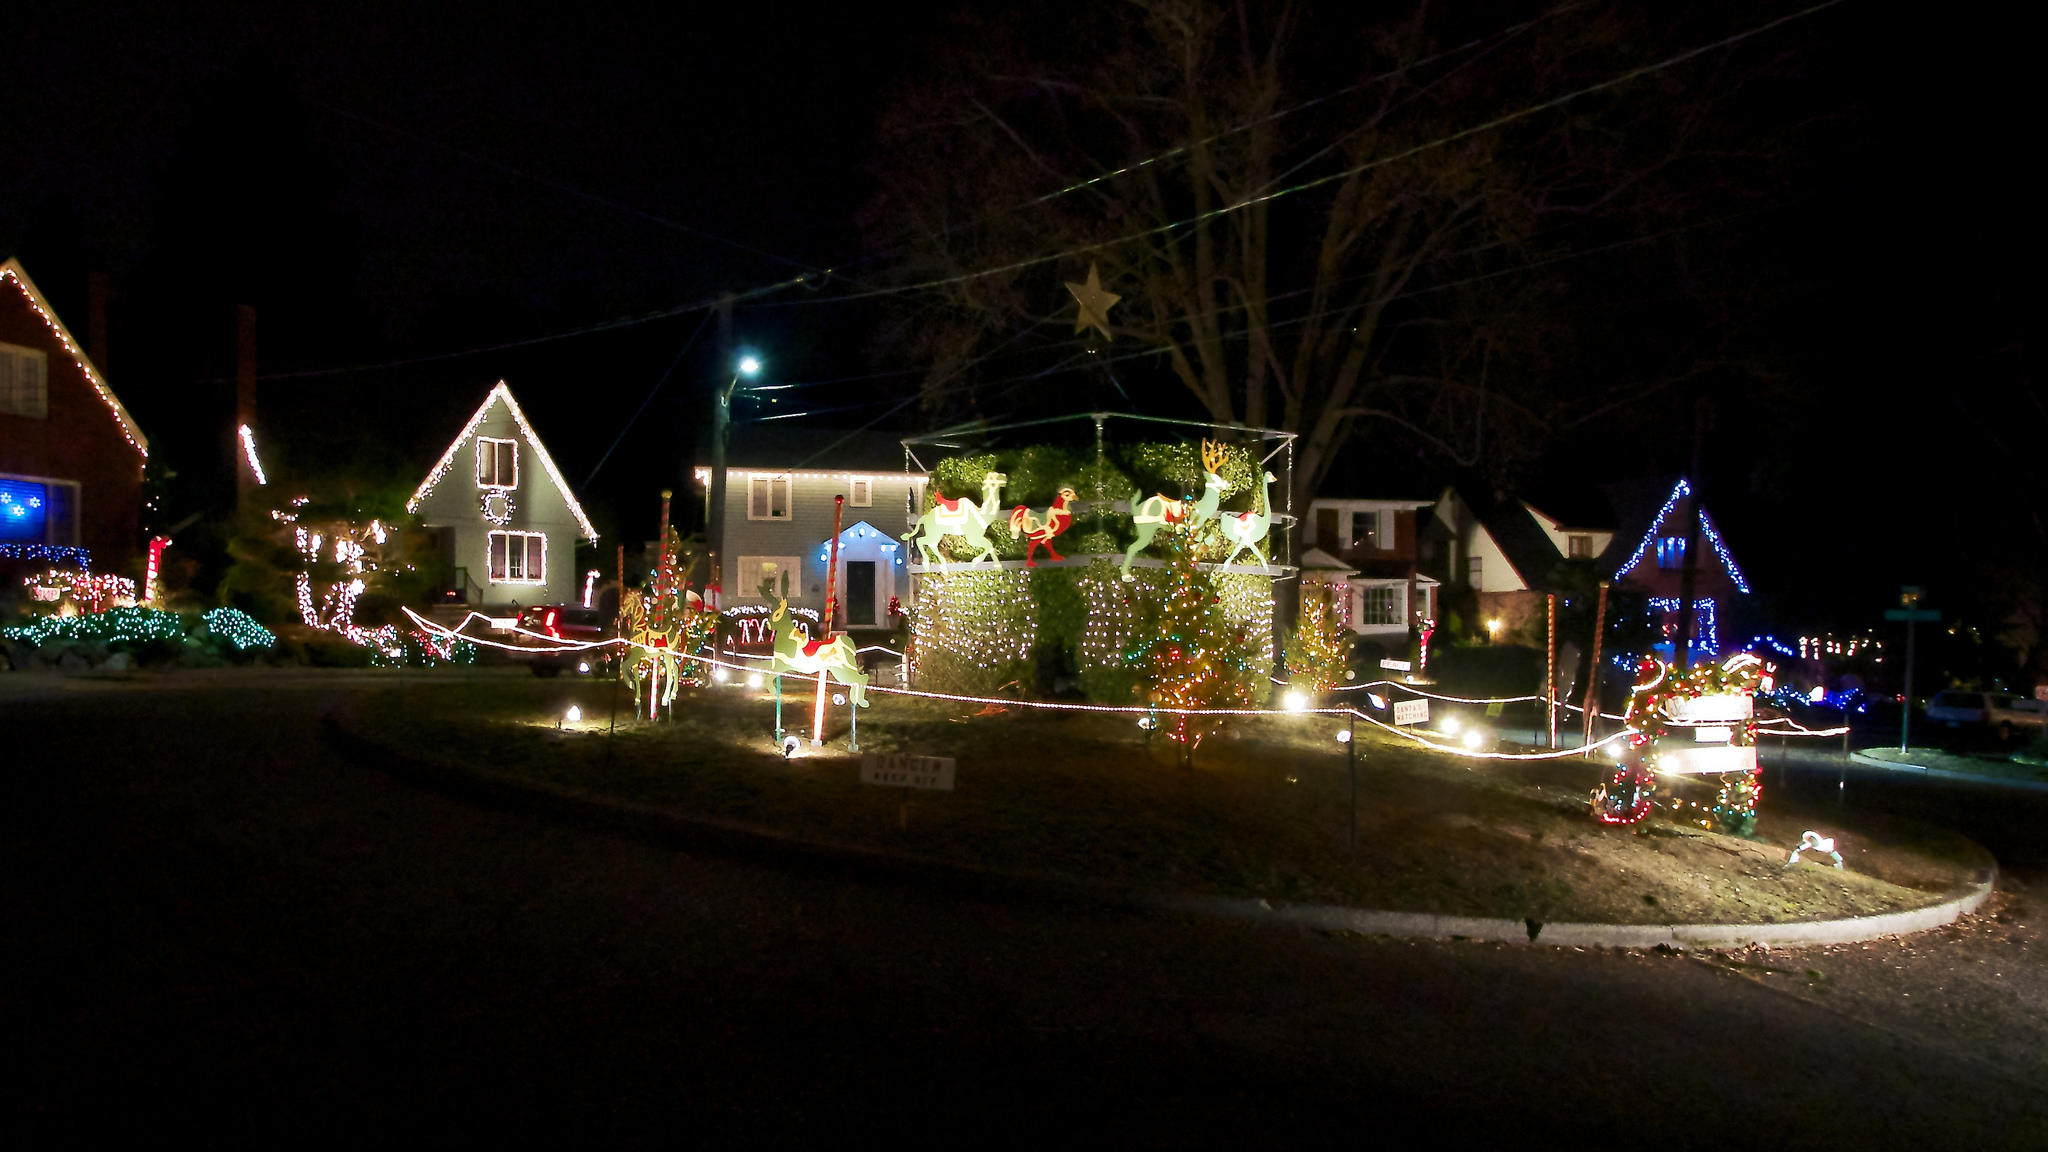 Candy Cane Lane In 2013 In Seattleu0027s Ravenna Neighborhood.